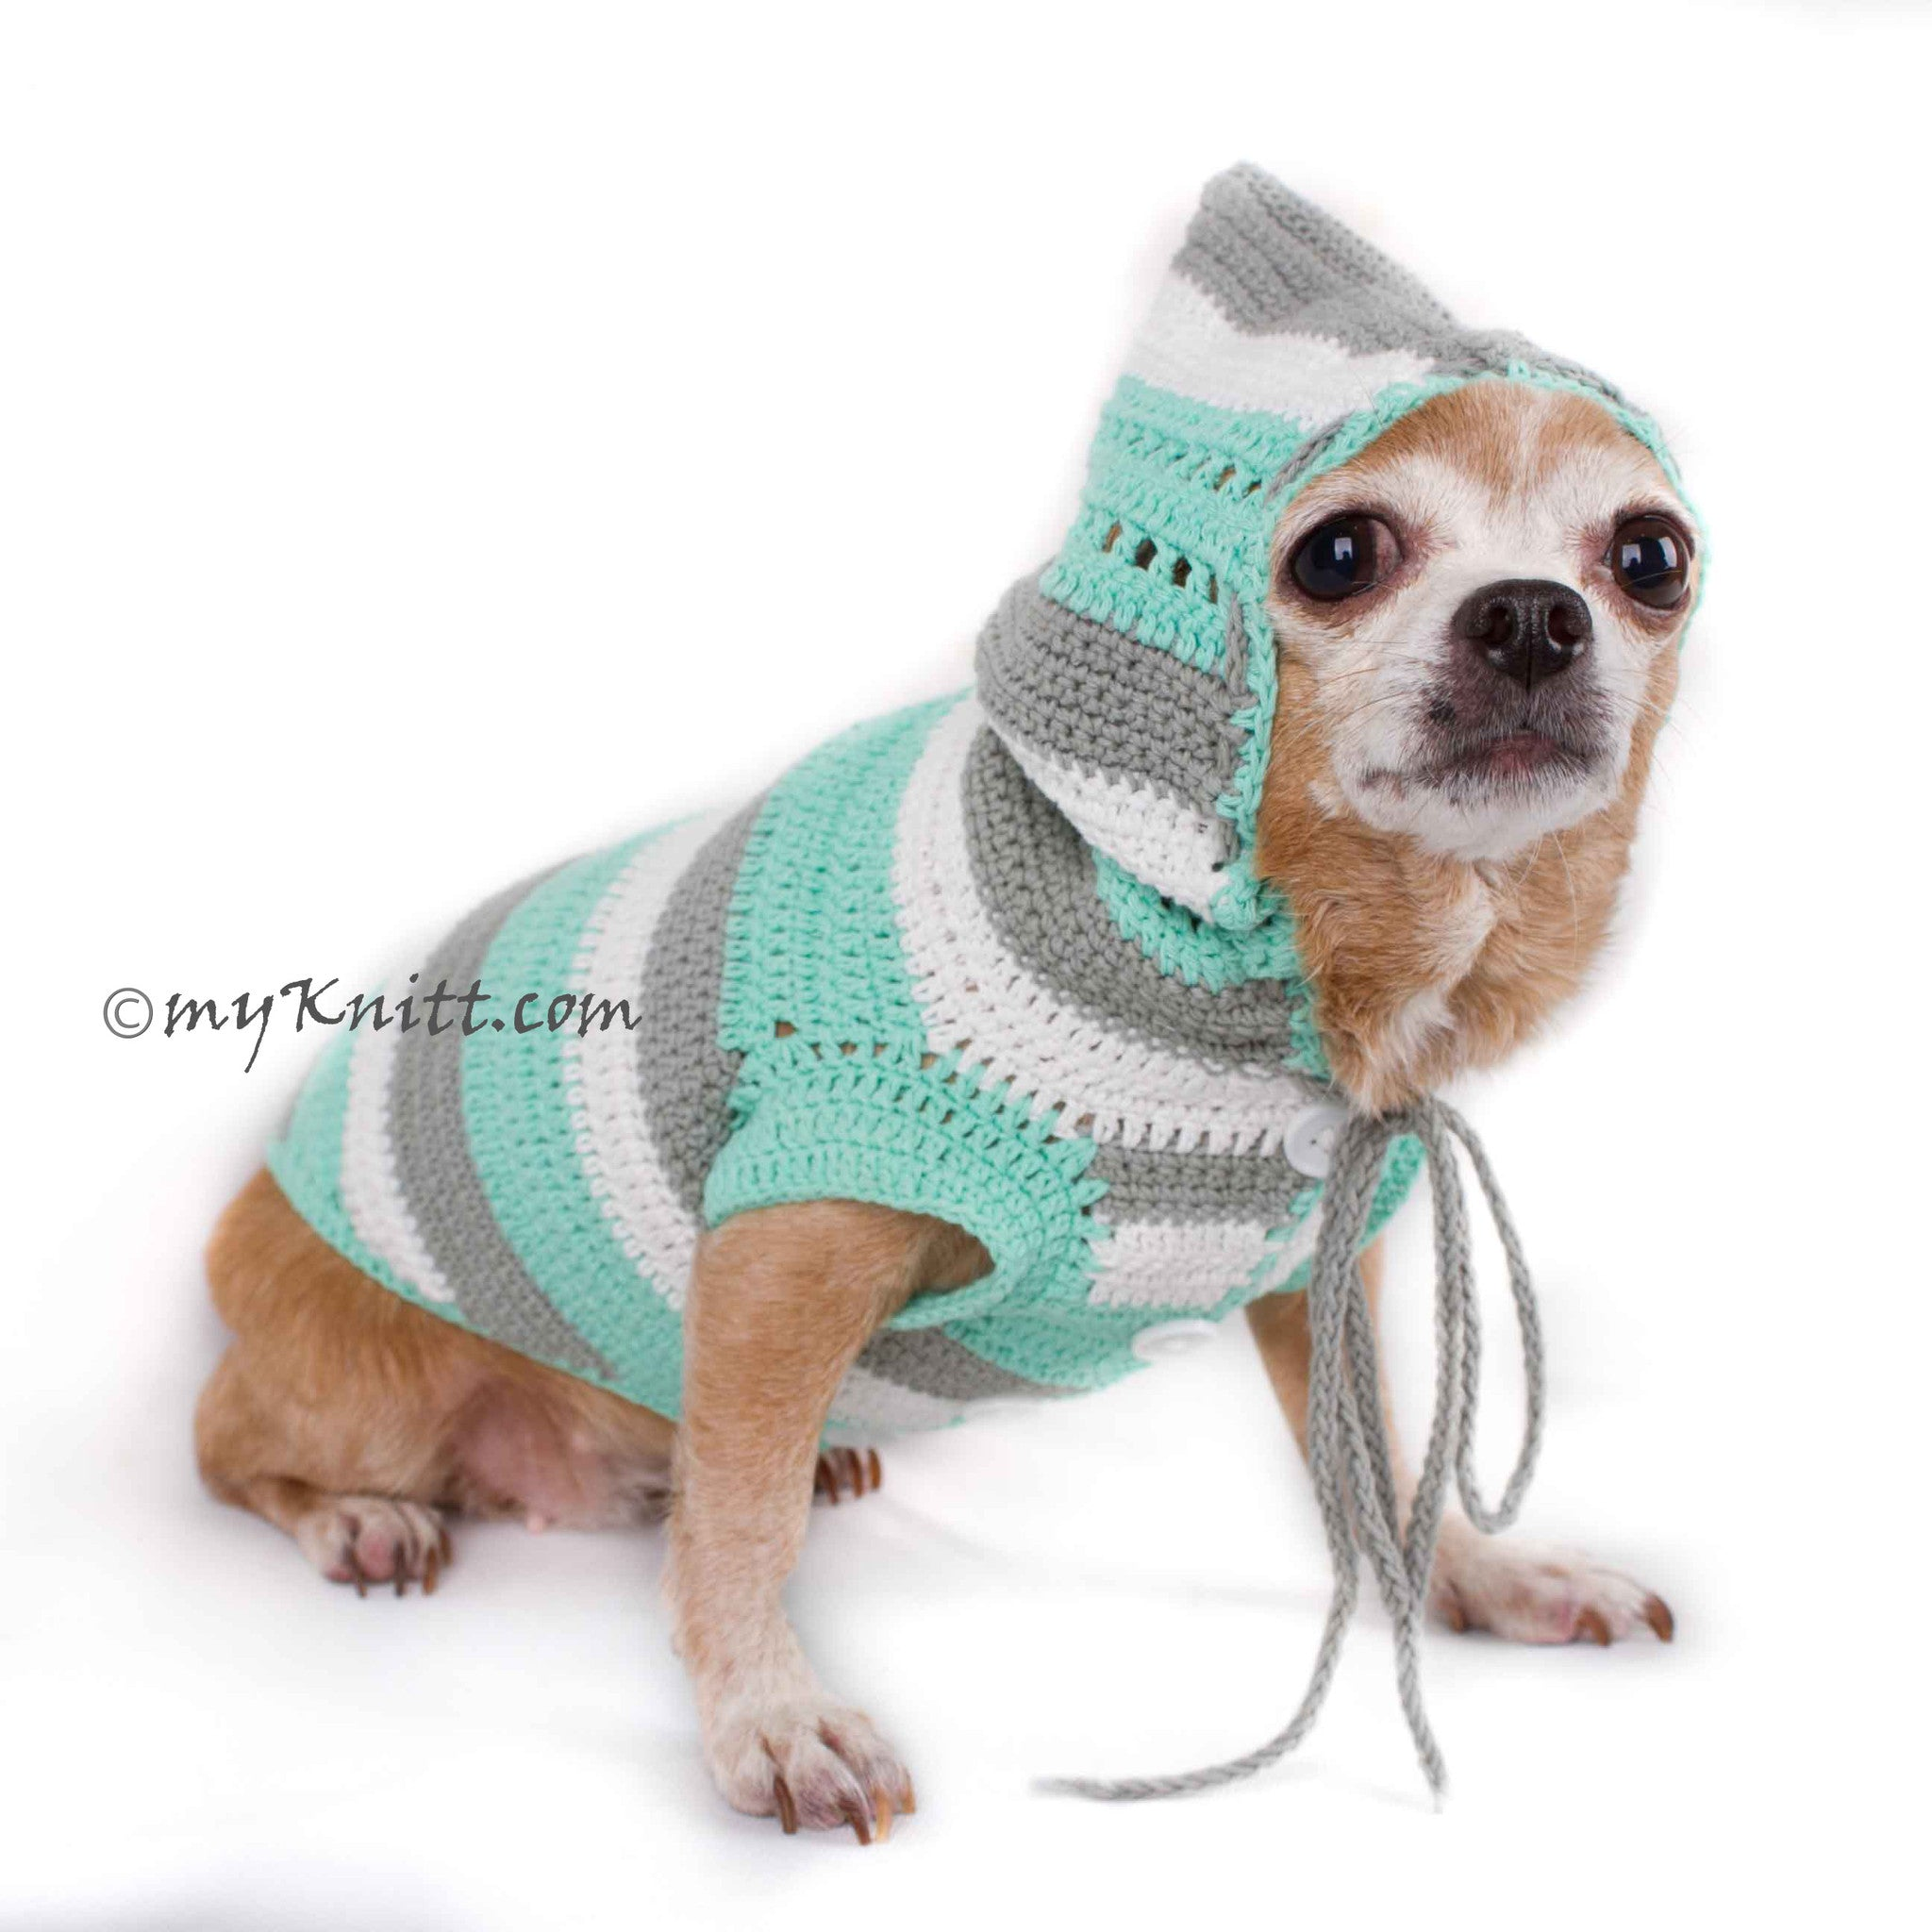 Warm Dog Hoodie Pastel Color Baby Handmade Knitted DK776 by Myknitt ...